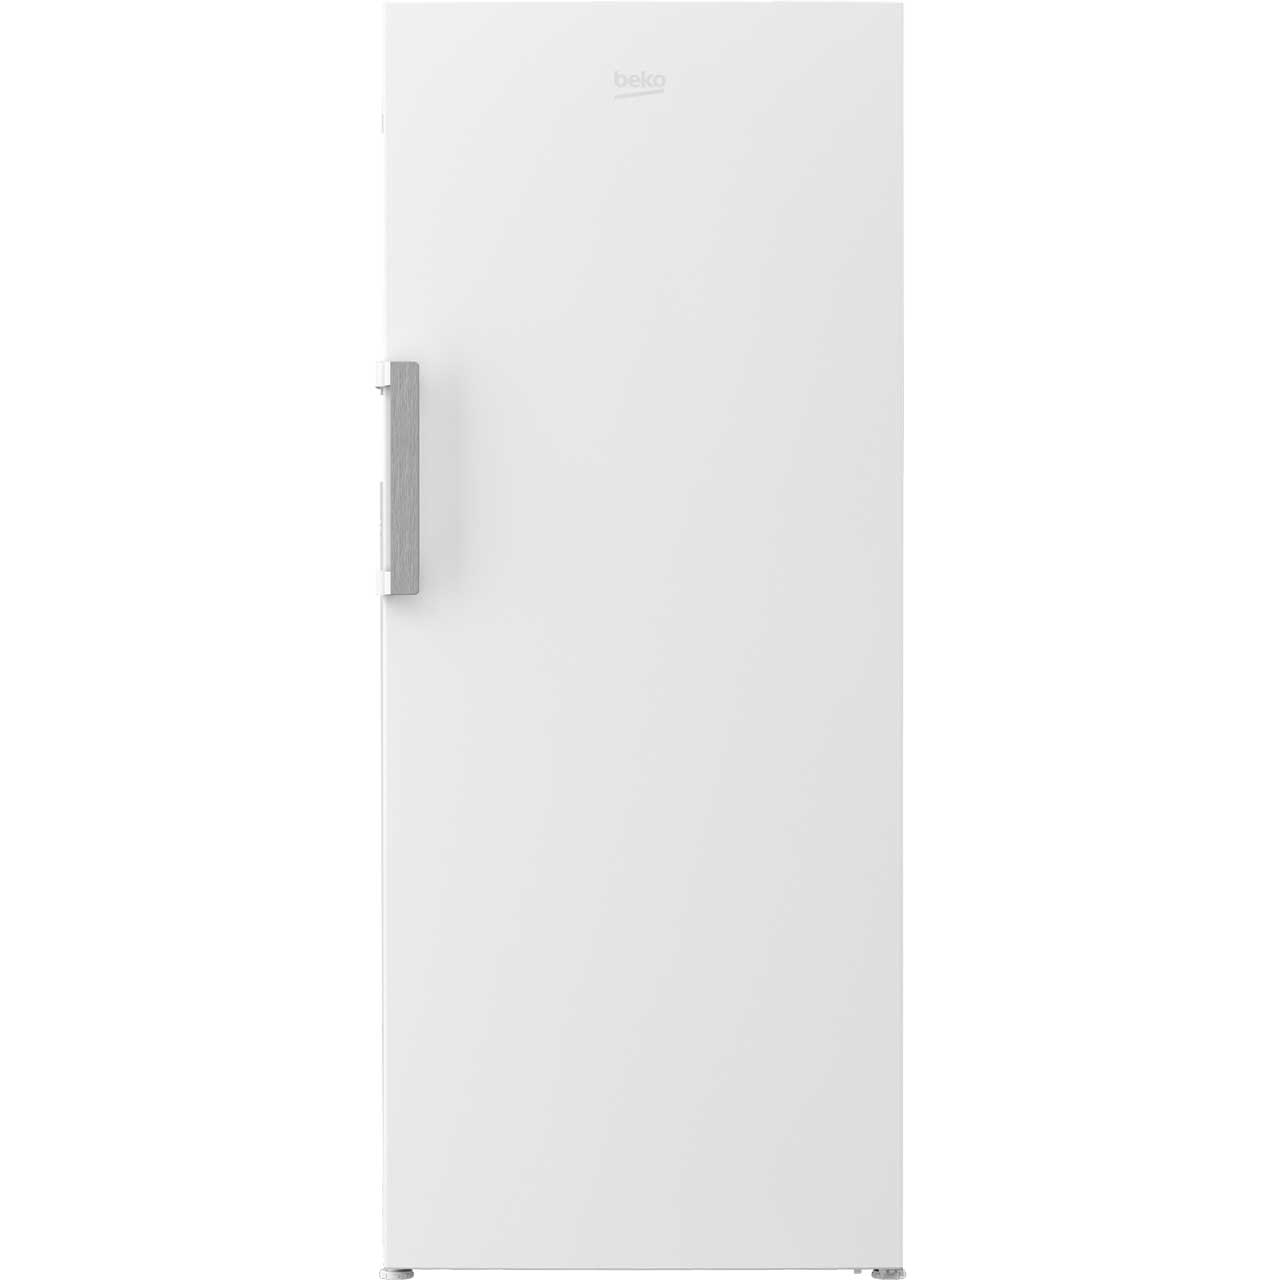 Beko LP1651W Free Standing Larder Fridge in White